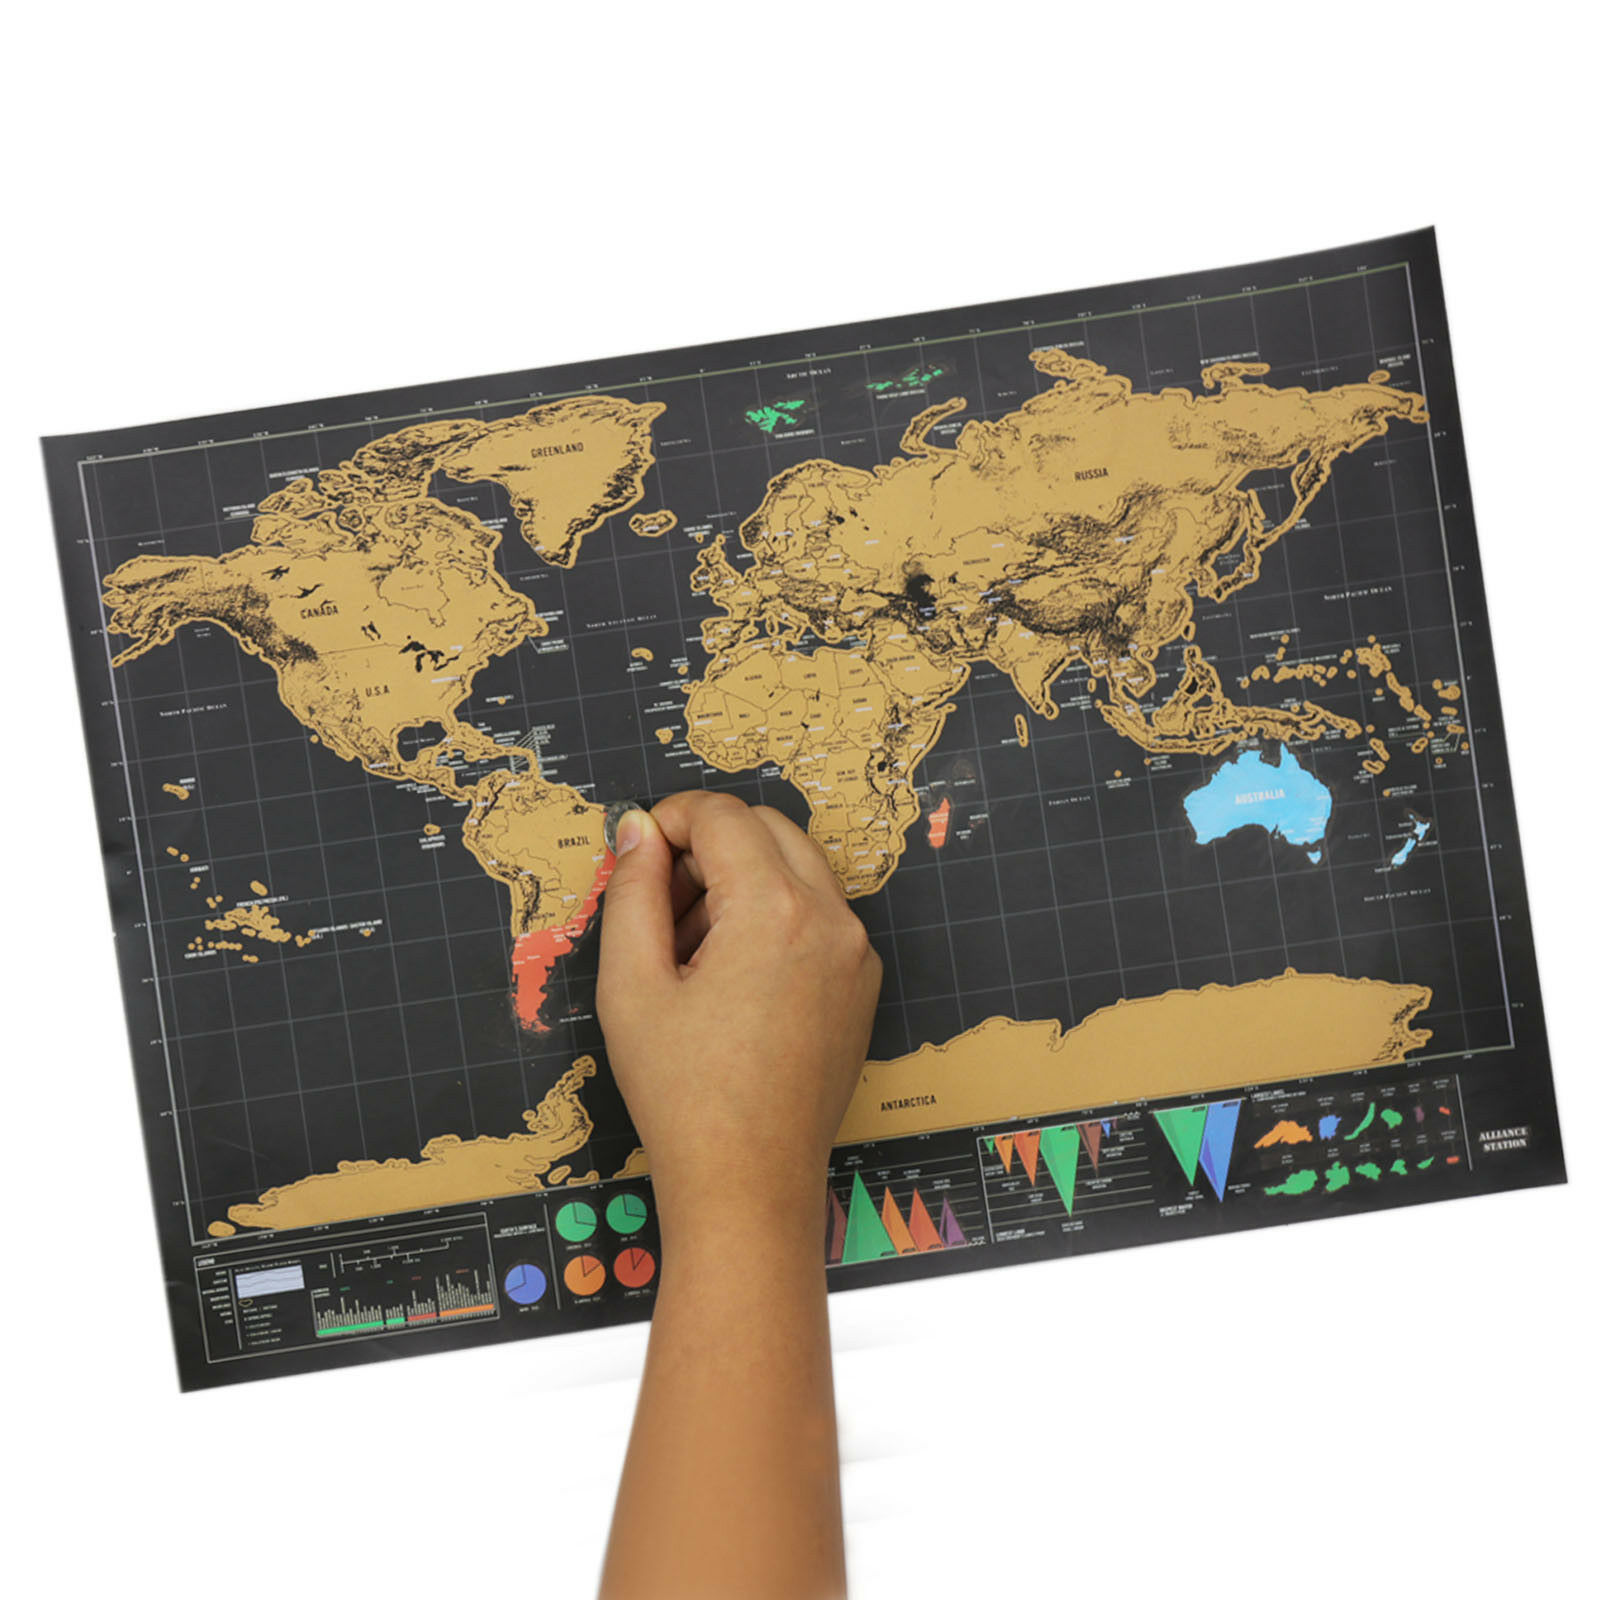 Scratch Off World Map Poster Interactive Travel Atlas Decor Large Deluxe Gift AU 9